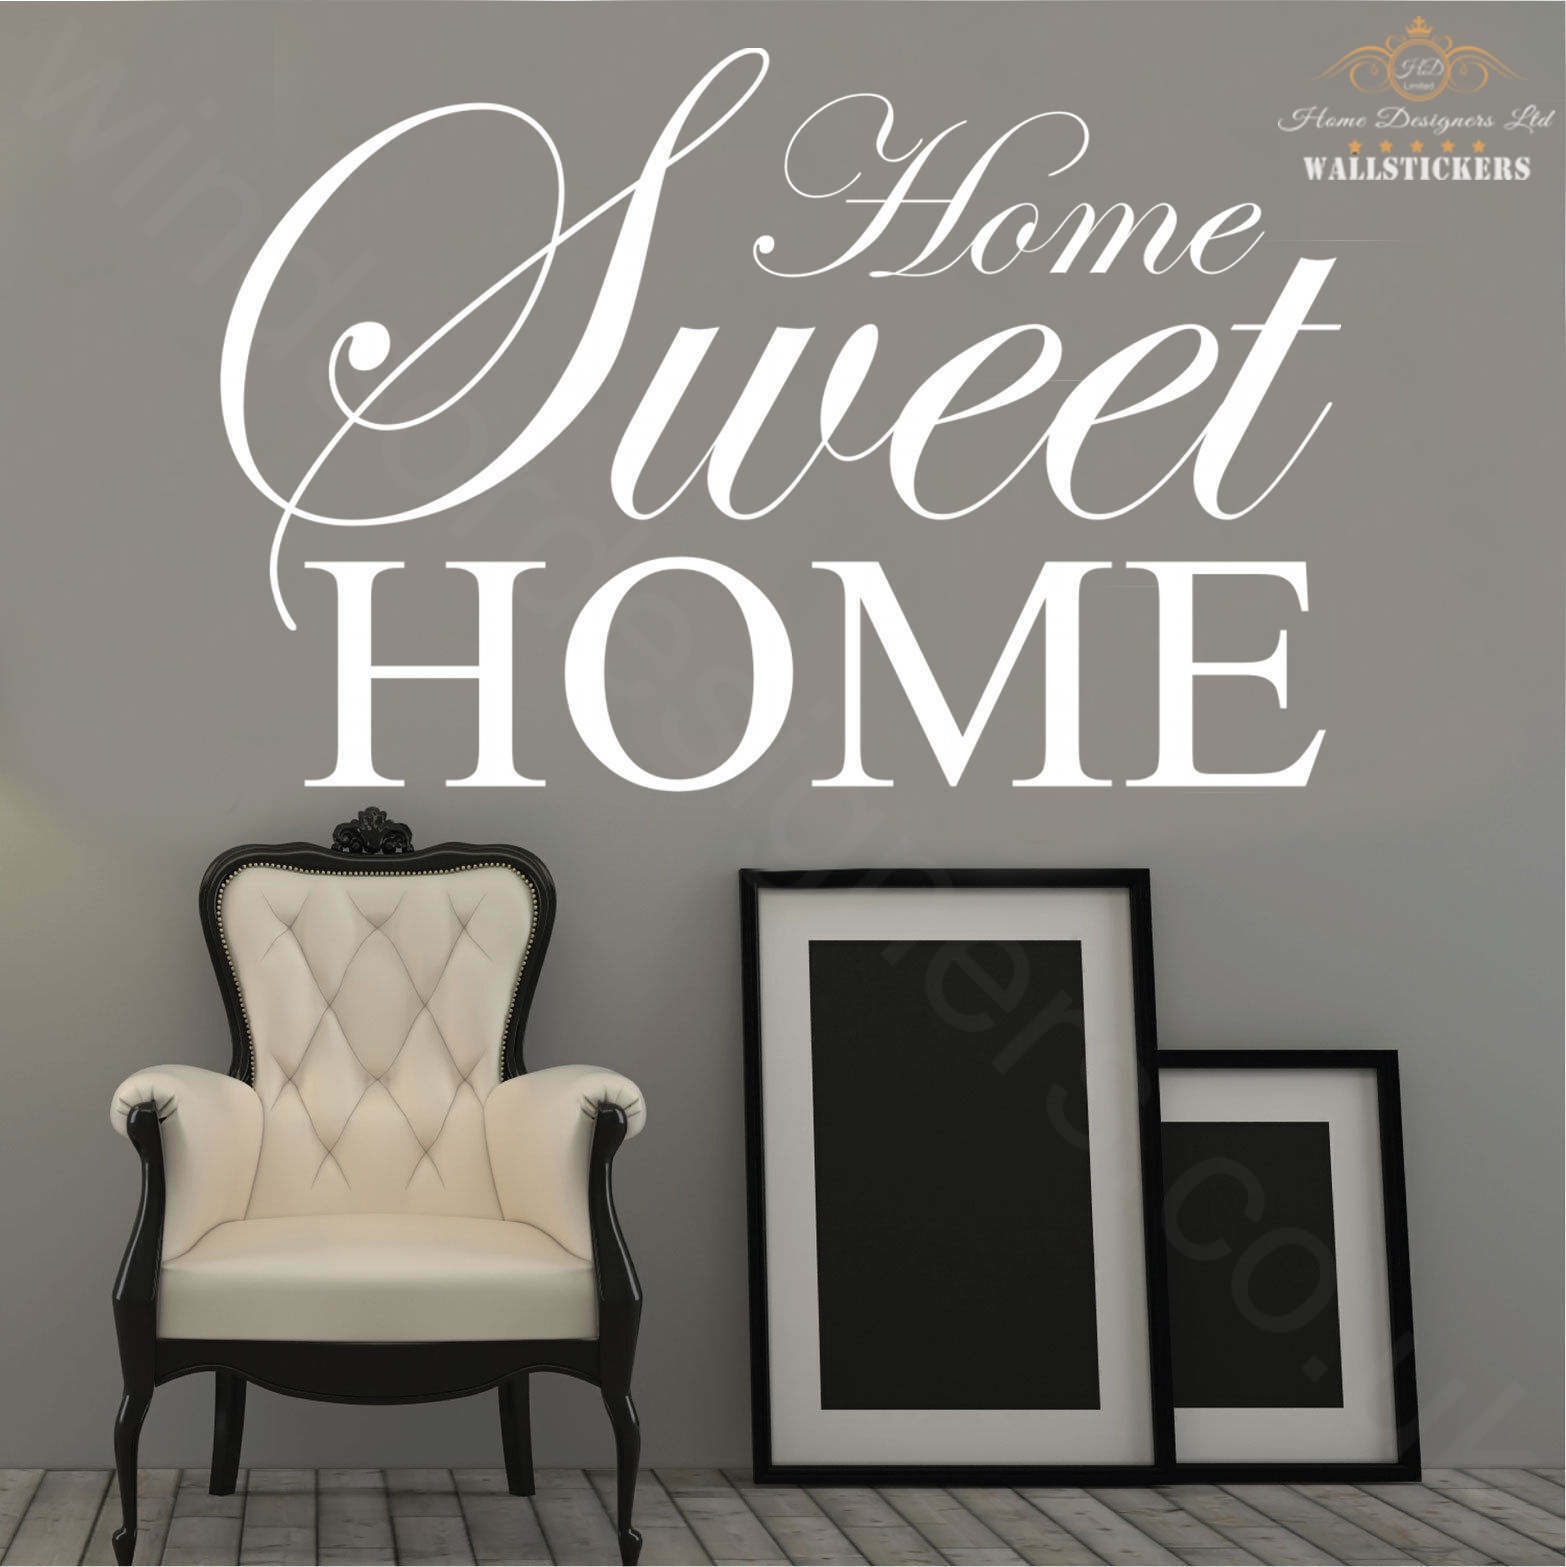 Home sweet home wall art sticker quote large decor ebay Home sweet home wall decor